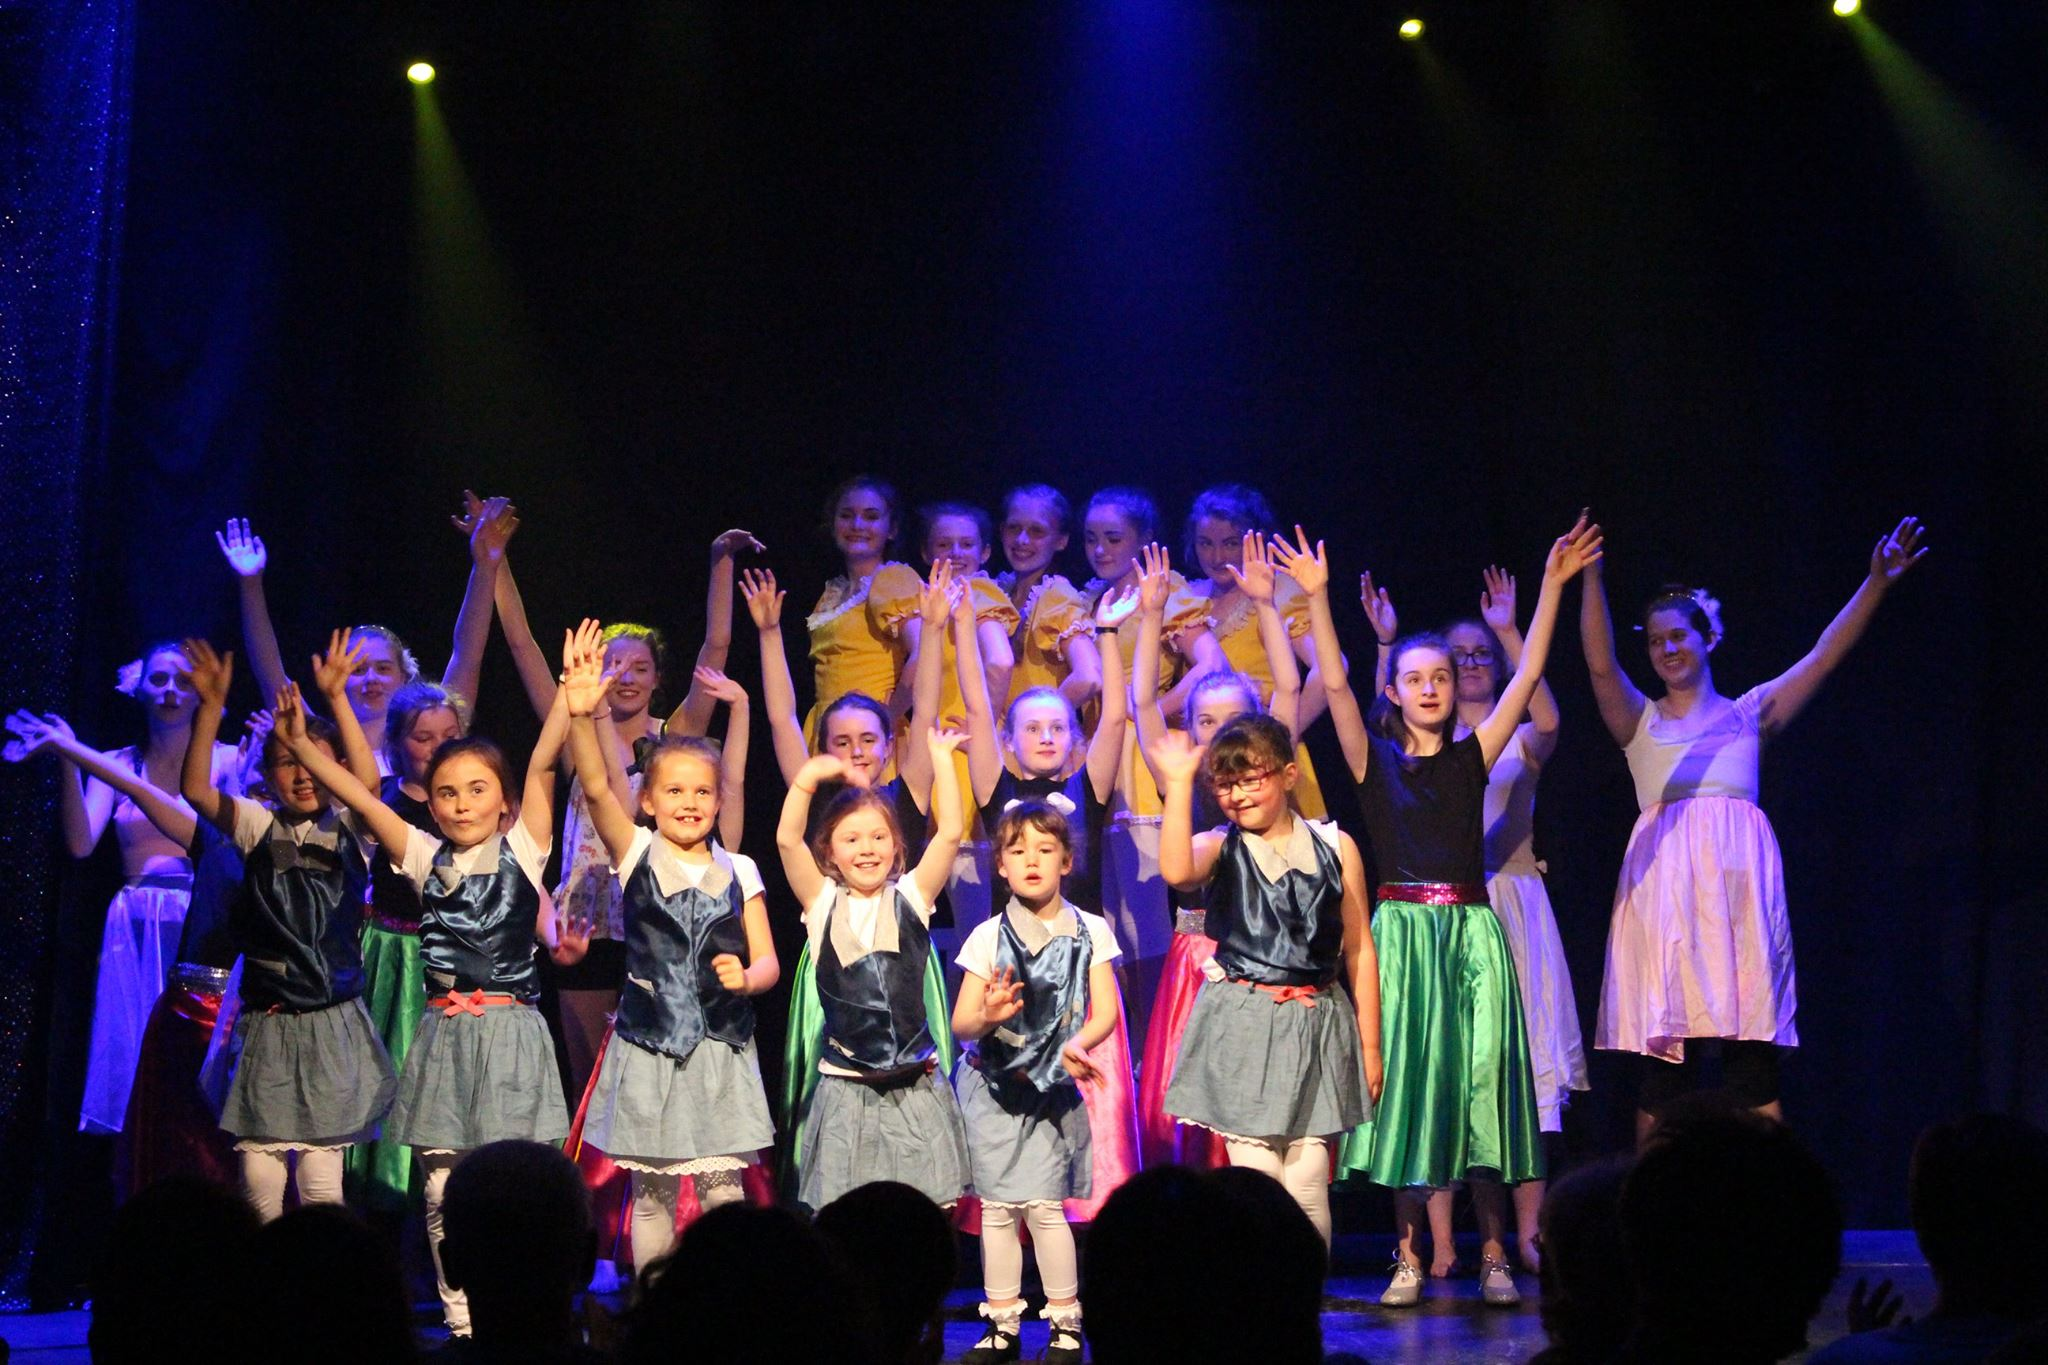 Waterford Academy of Music and Arts Showcase at The Theatre Royal